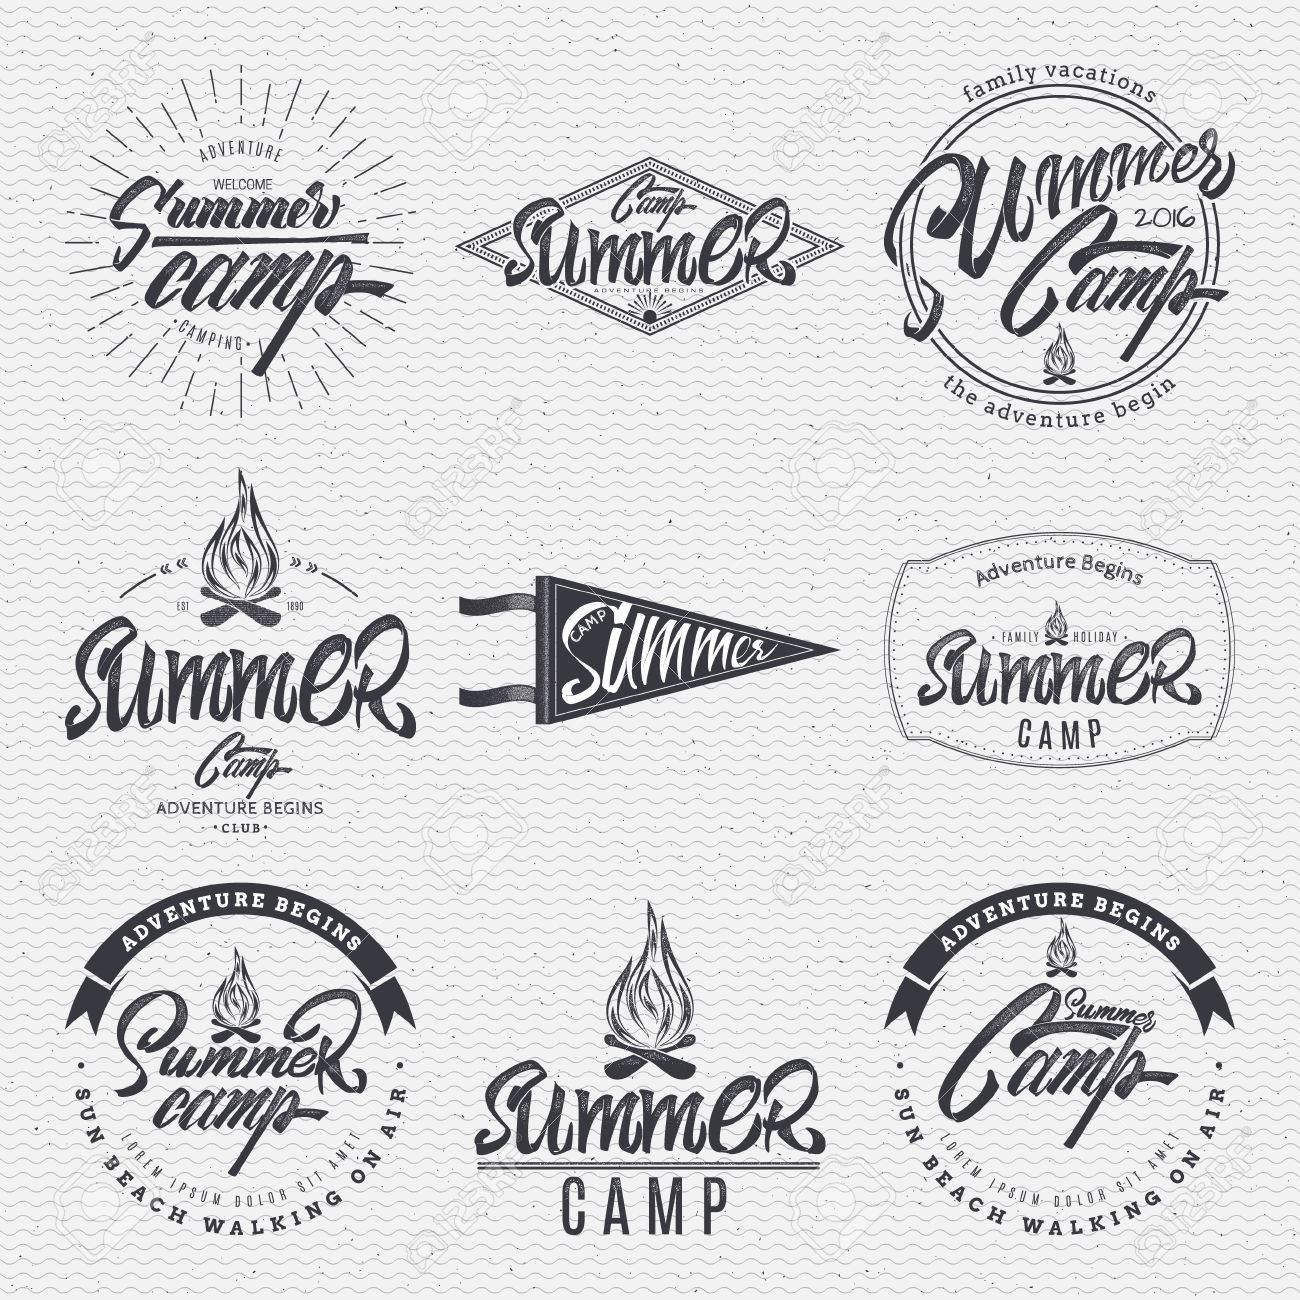 summer camp typographic design mark made using a combination of the composition of geometric forms, rays, letters, painted by hand with the help of lettering and calligraphy skills - 55199126